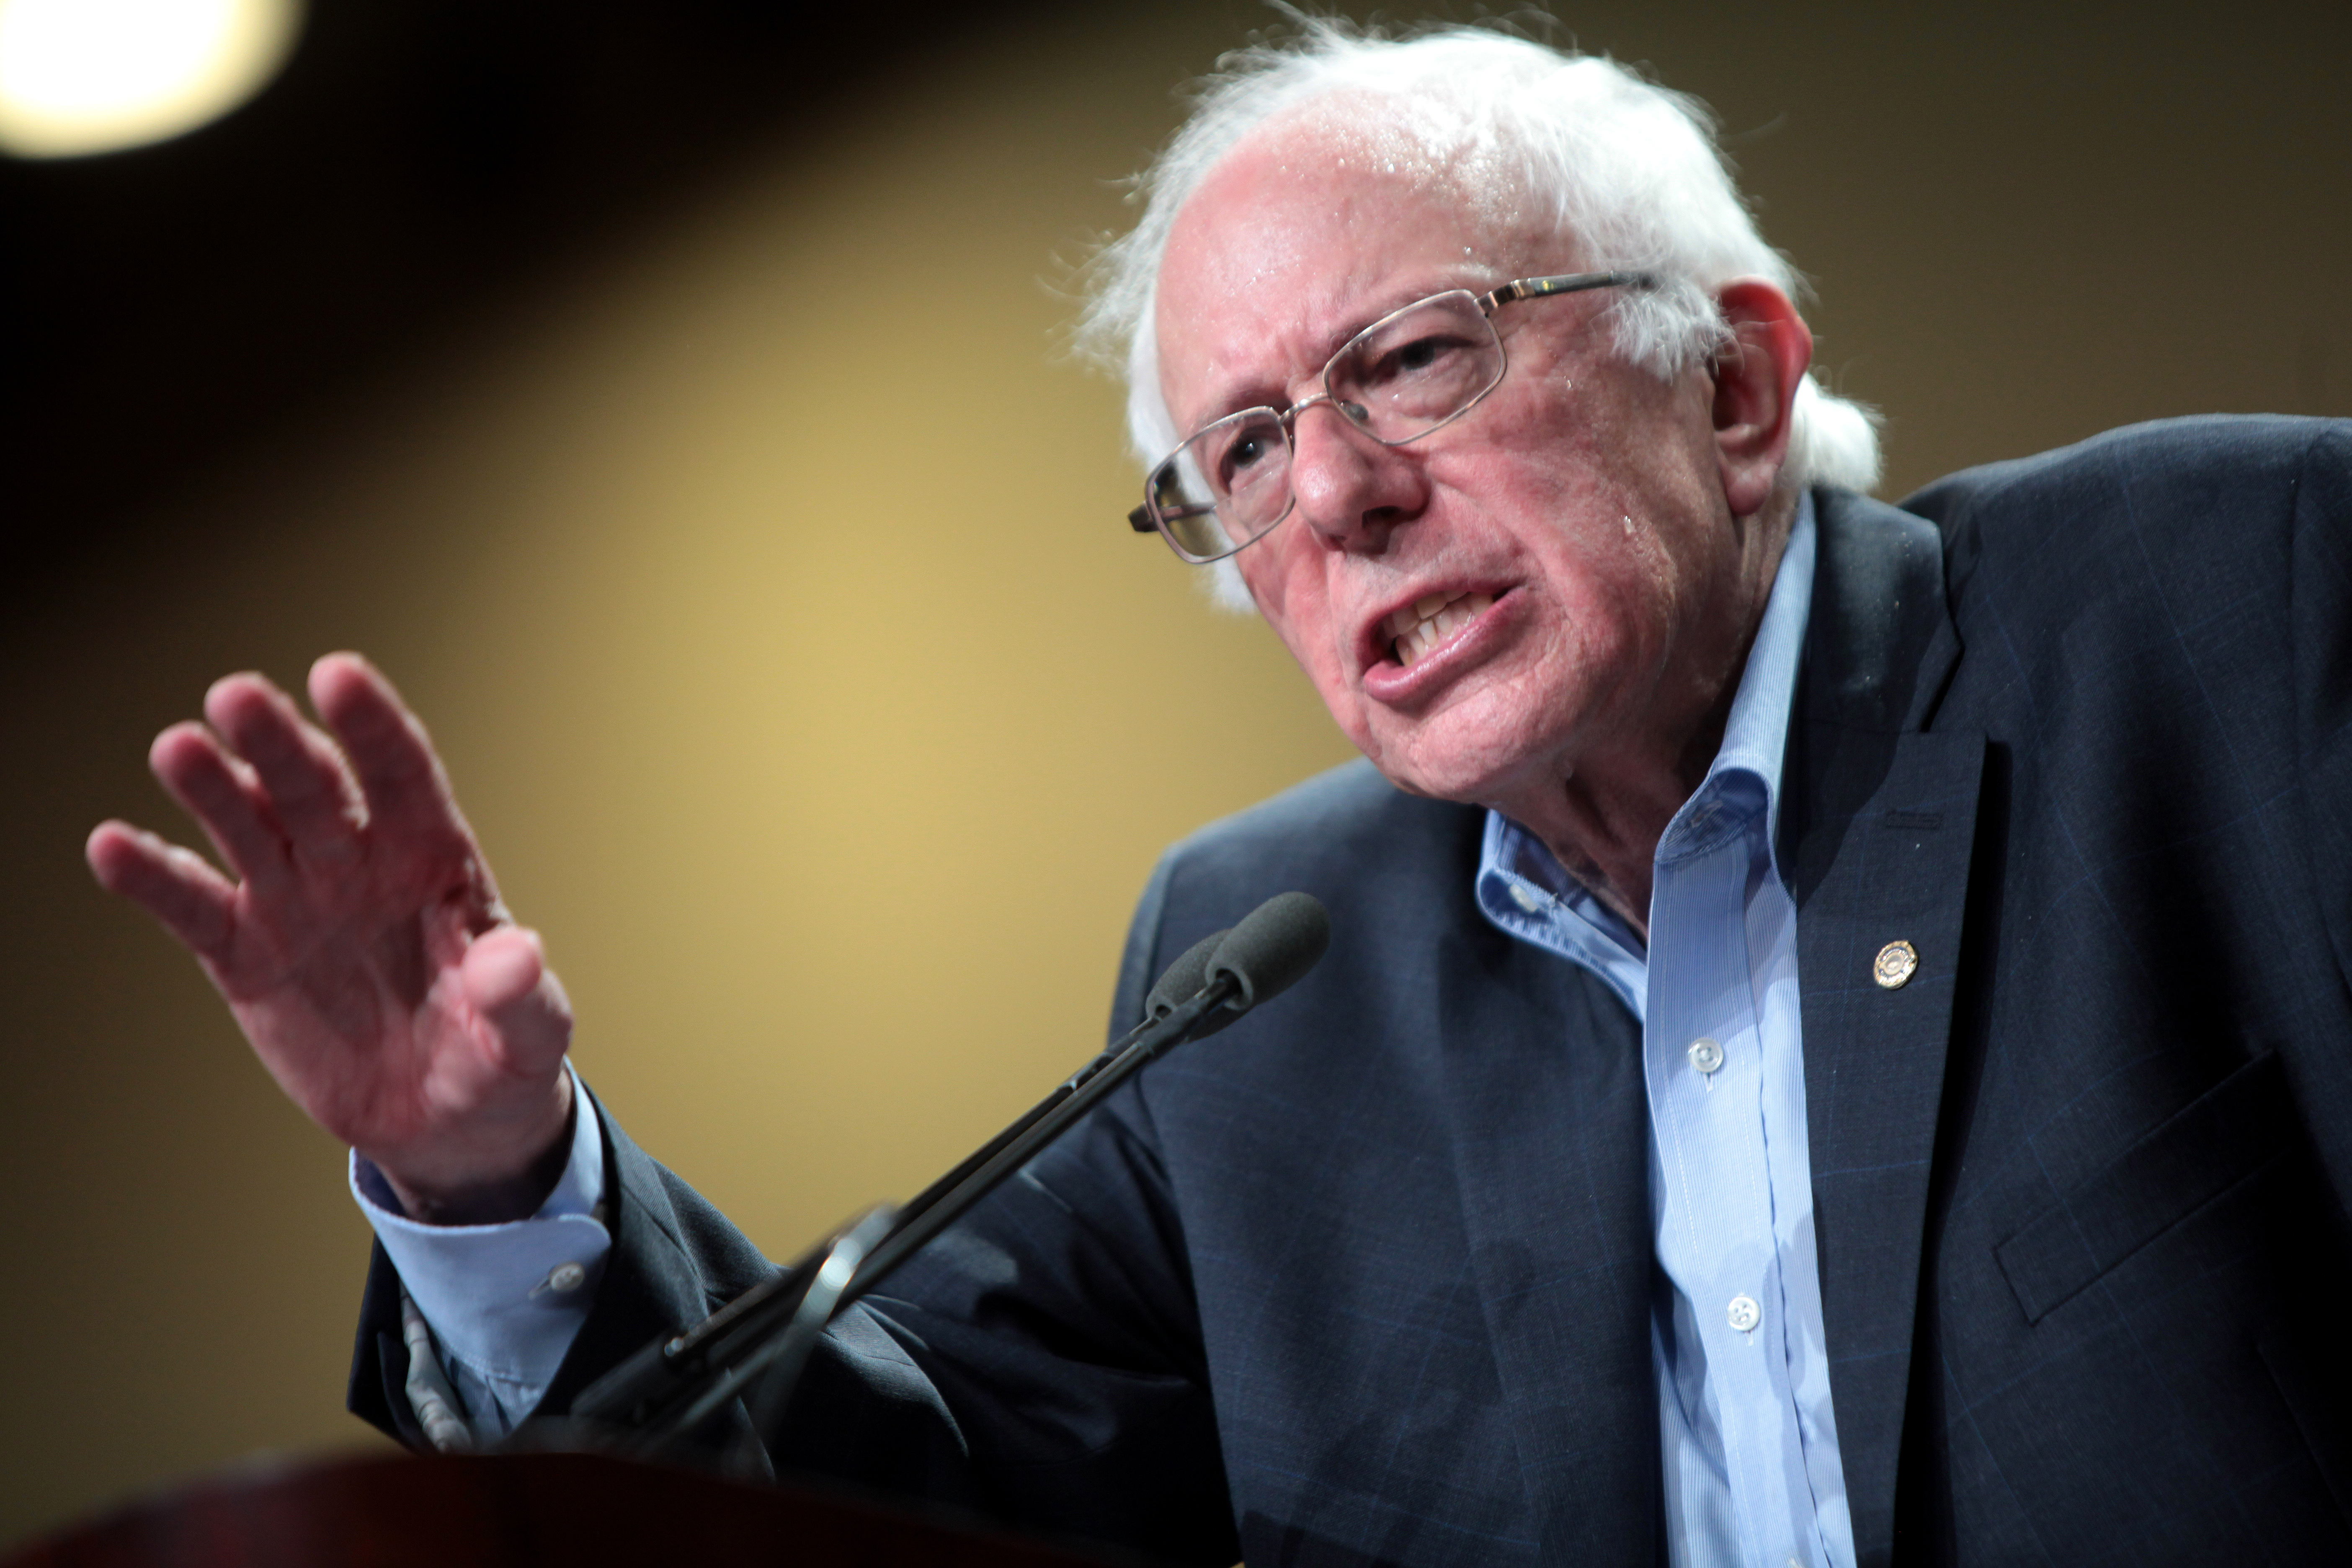 Bernie Sanders TV – Why the Youtube channel?